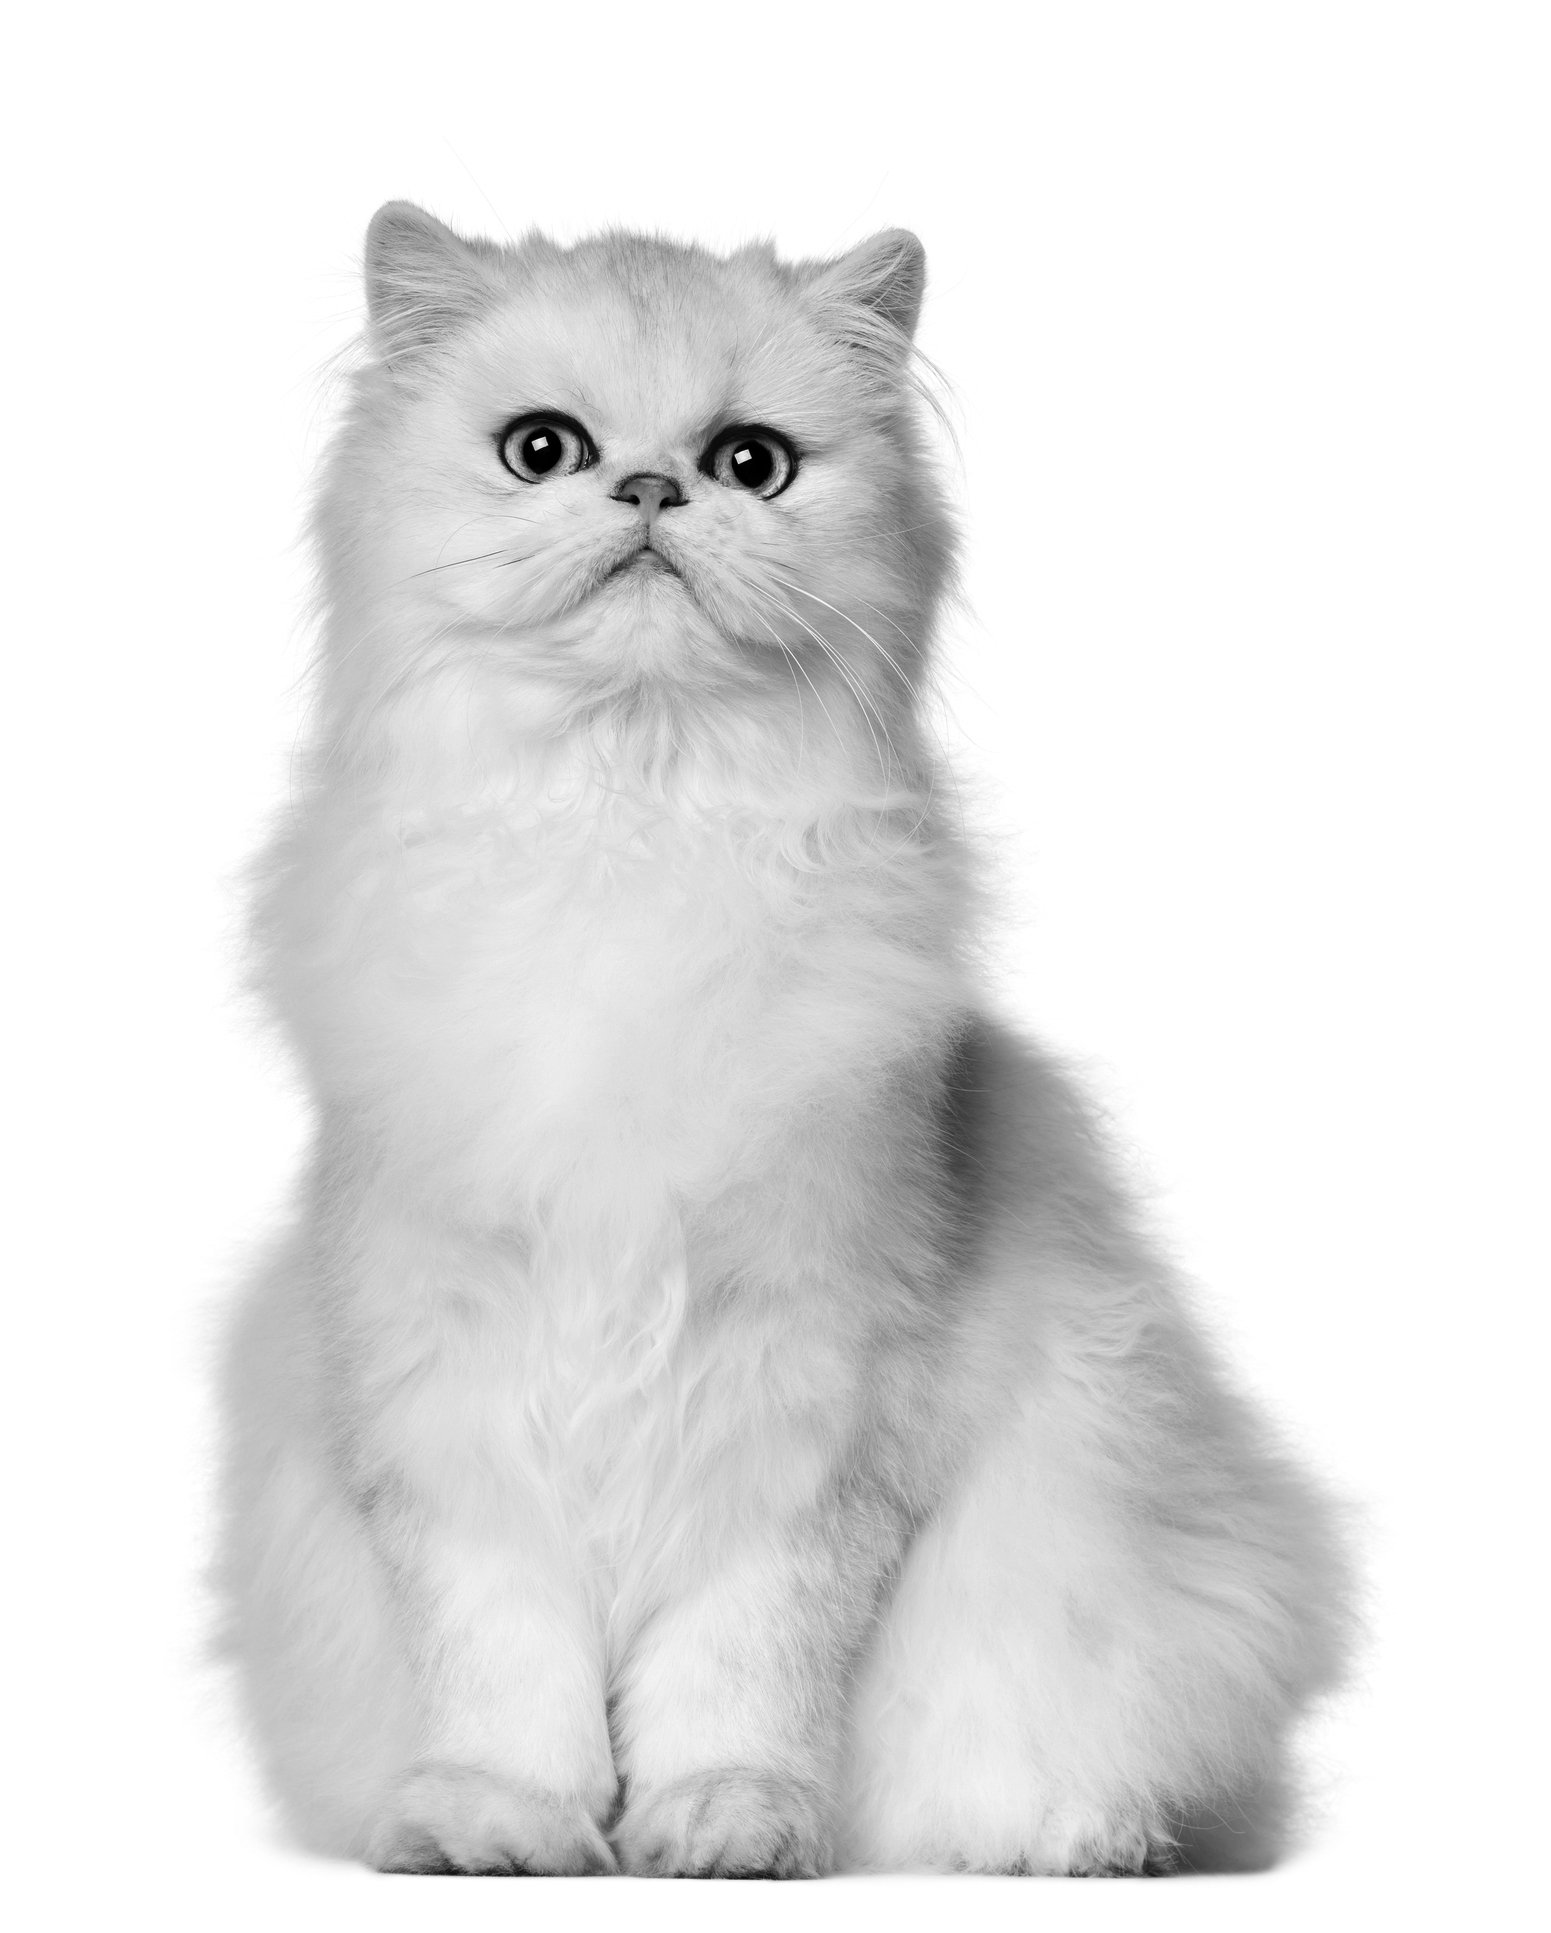 The Odds Of Deafness In White Cats Catwatch Newsletter